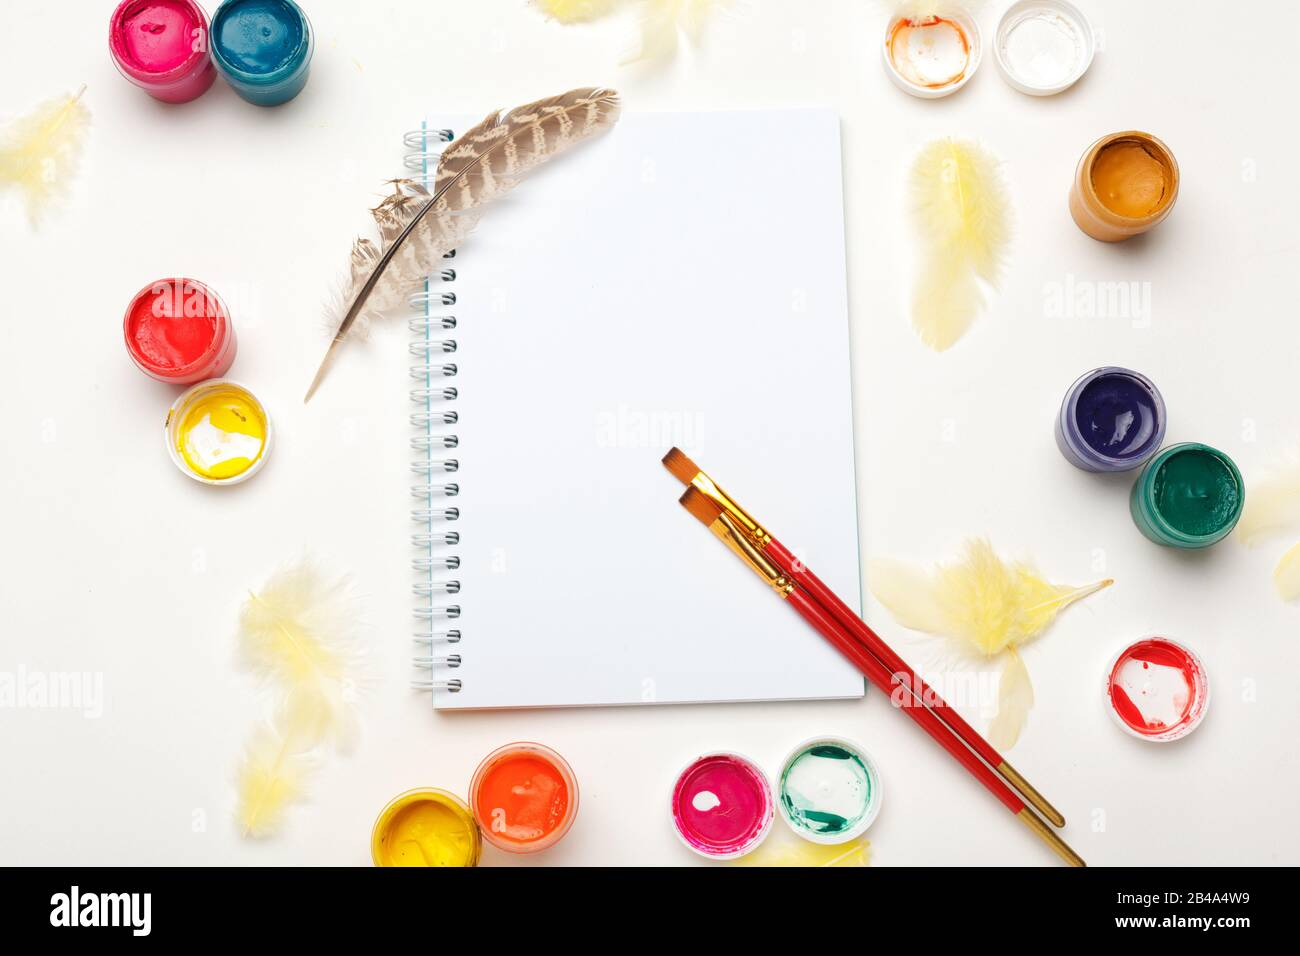 Paper Watercolors Paint Brush And Some Art Stuff On A Table Top View Stock Photo Alamy